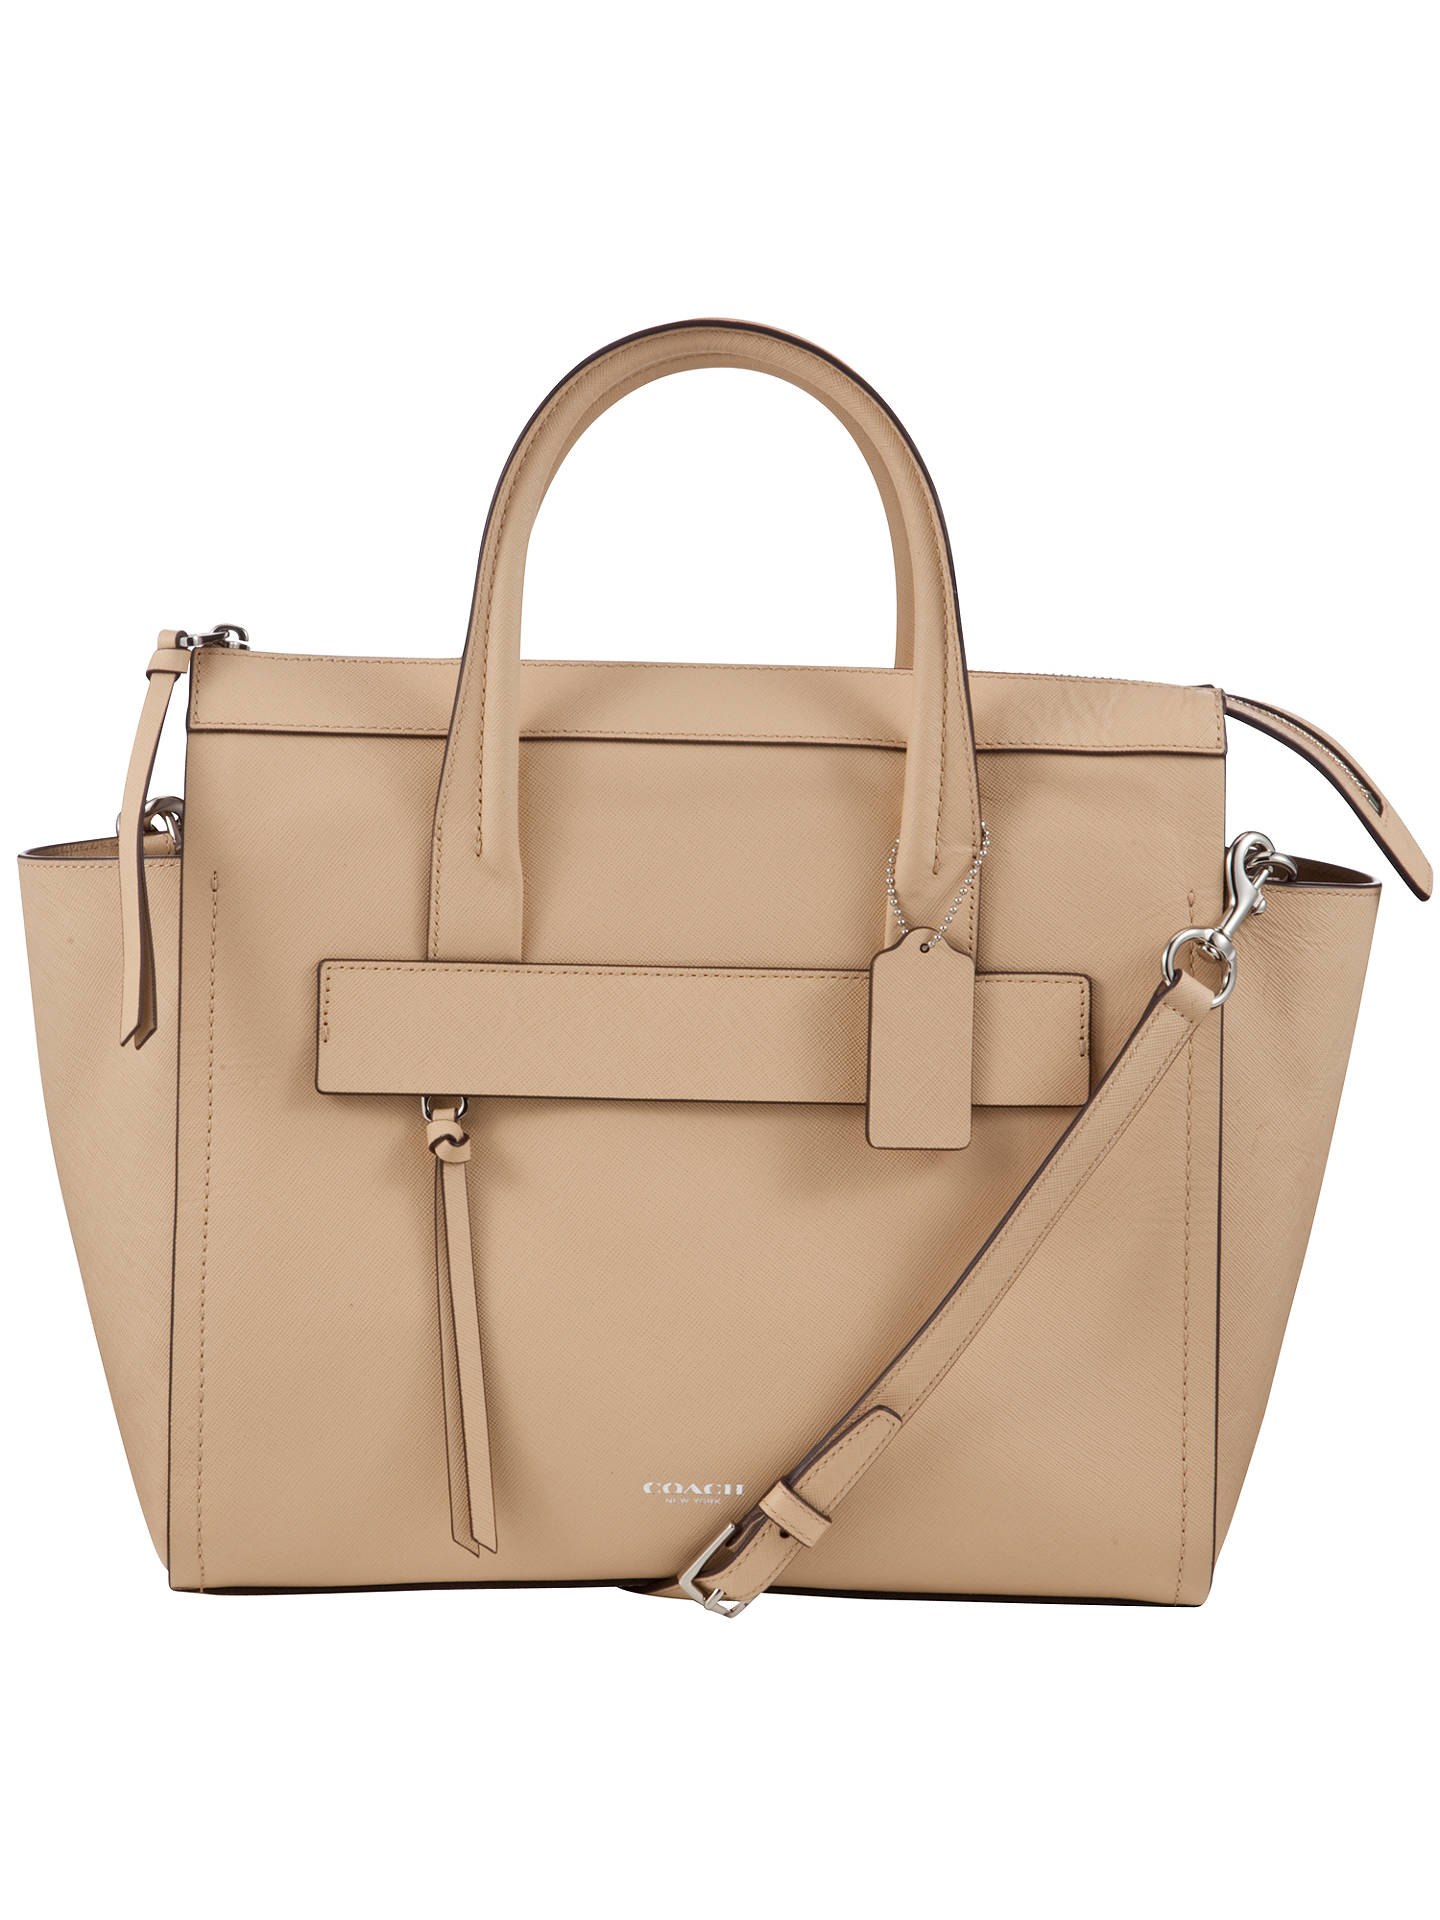 27b4b5ffd7 Coach Bleeker Riley Saffiano Leather Carryall Tote Bag at John Lewis ...